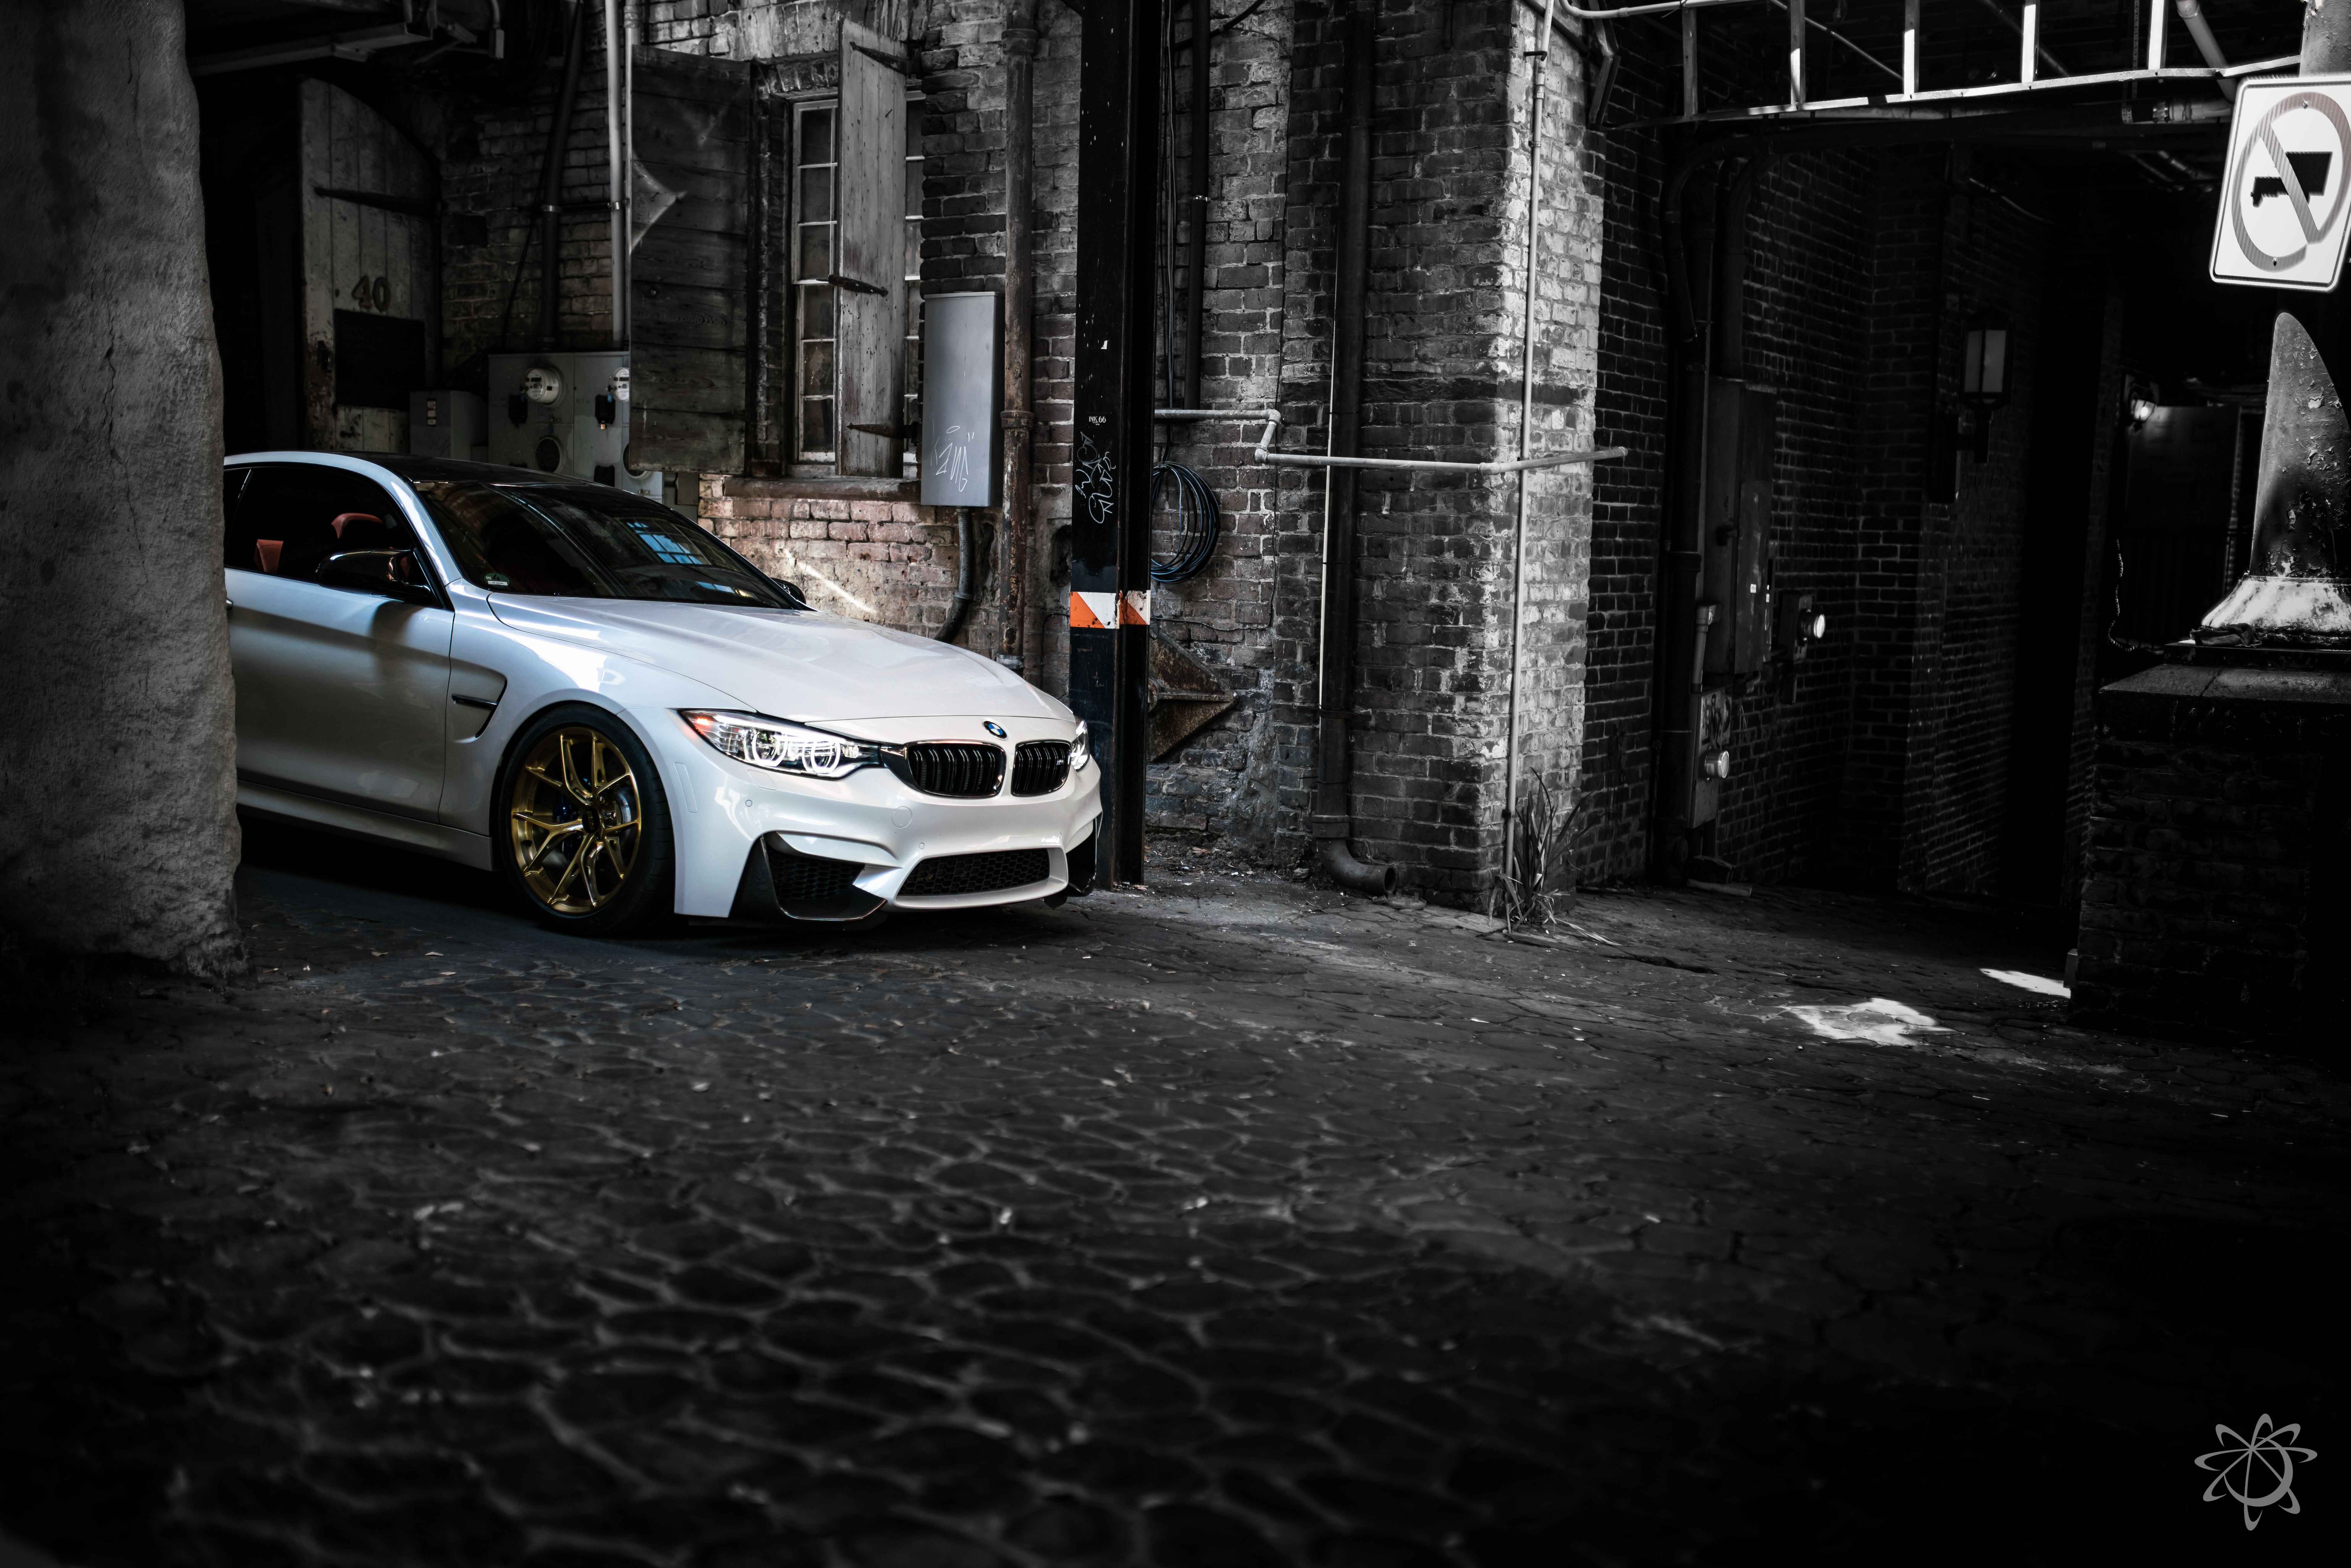 Cute Artsy Wallpapers Your Ridiculously Awesome Bmw M4 Wallpaper Is Here